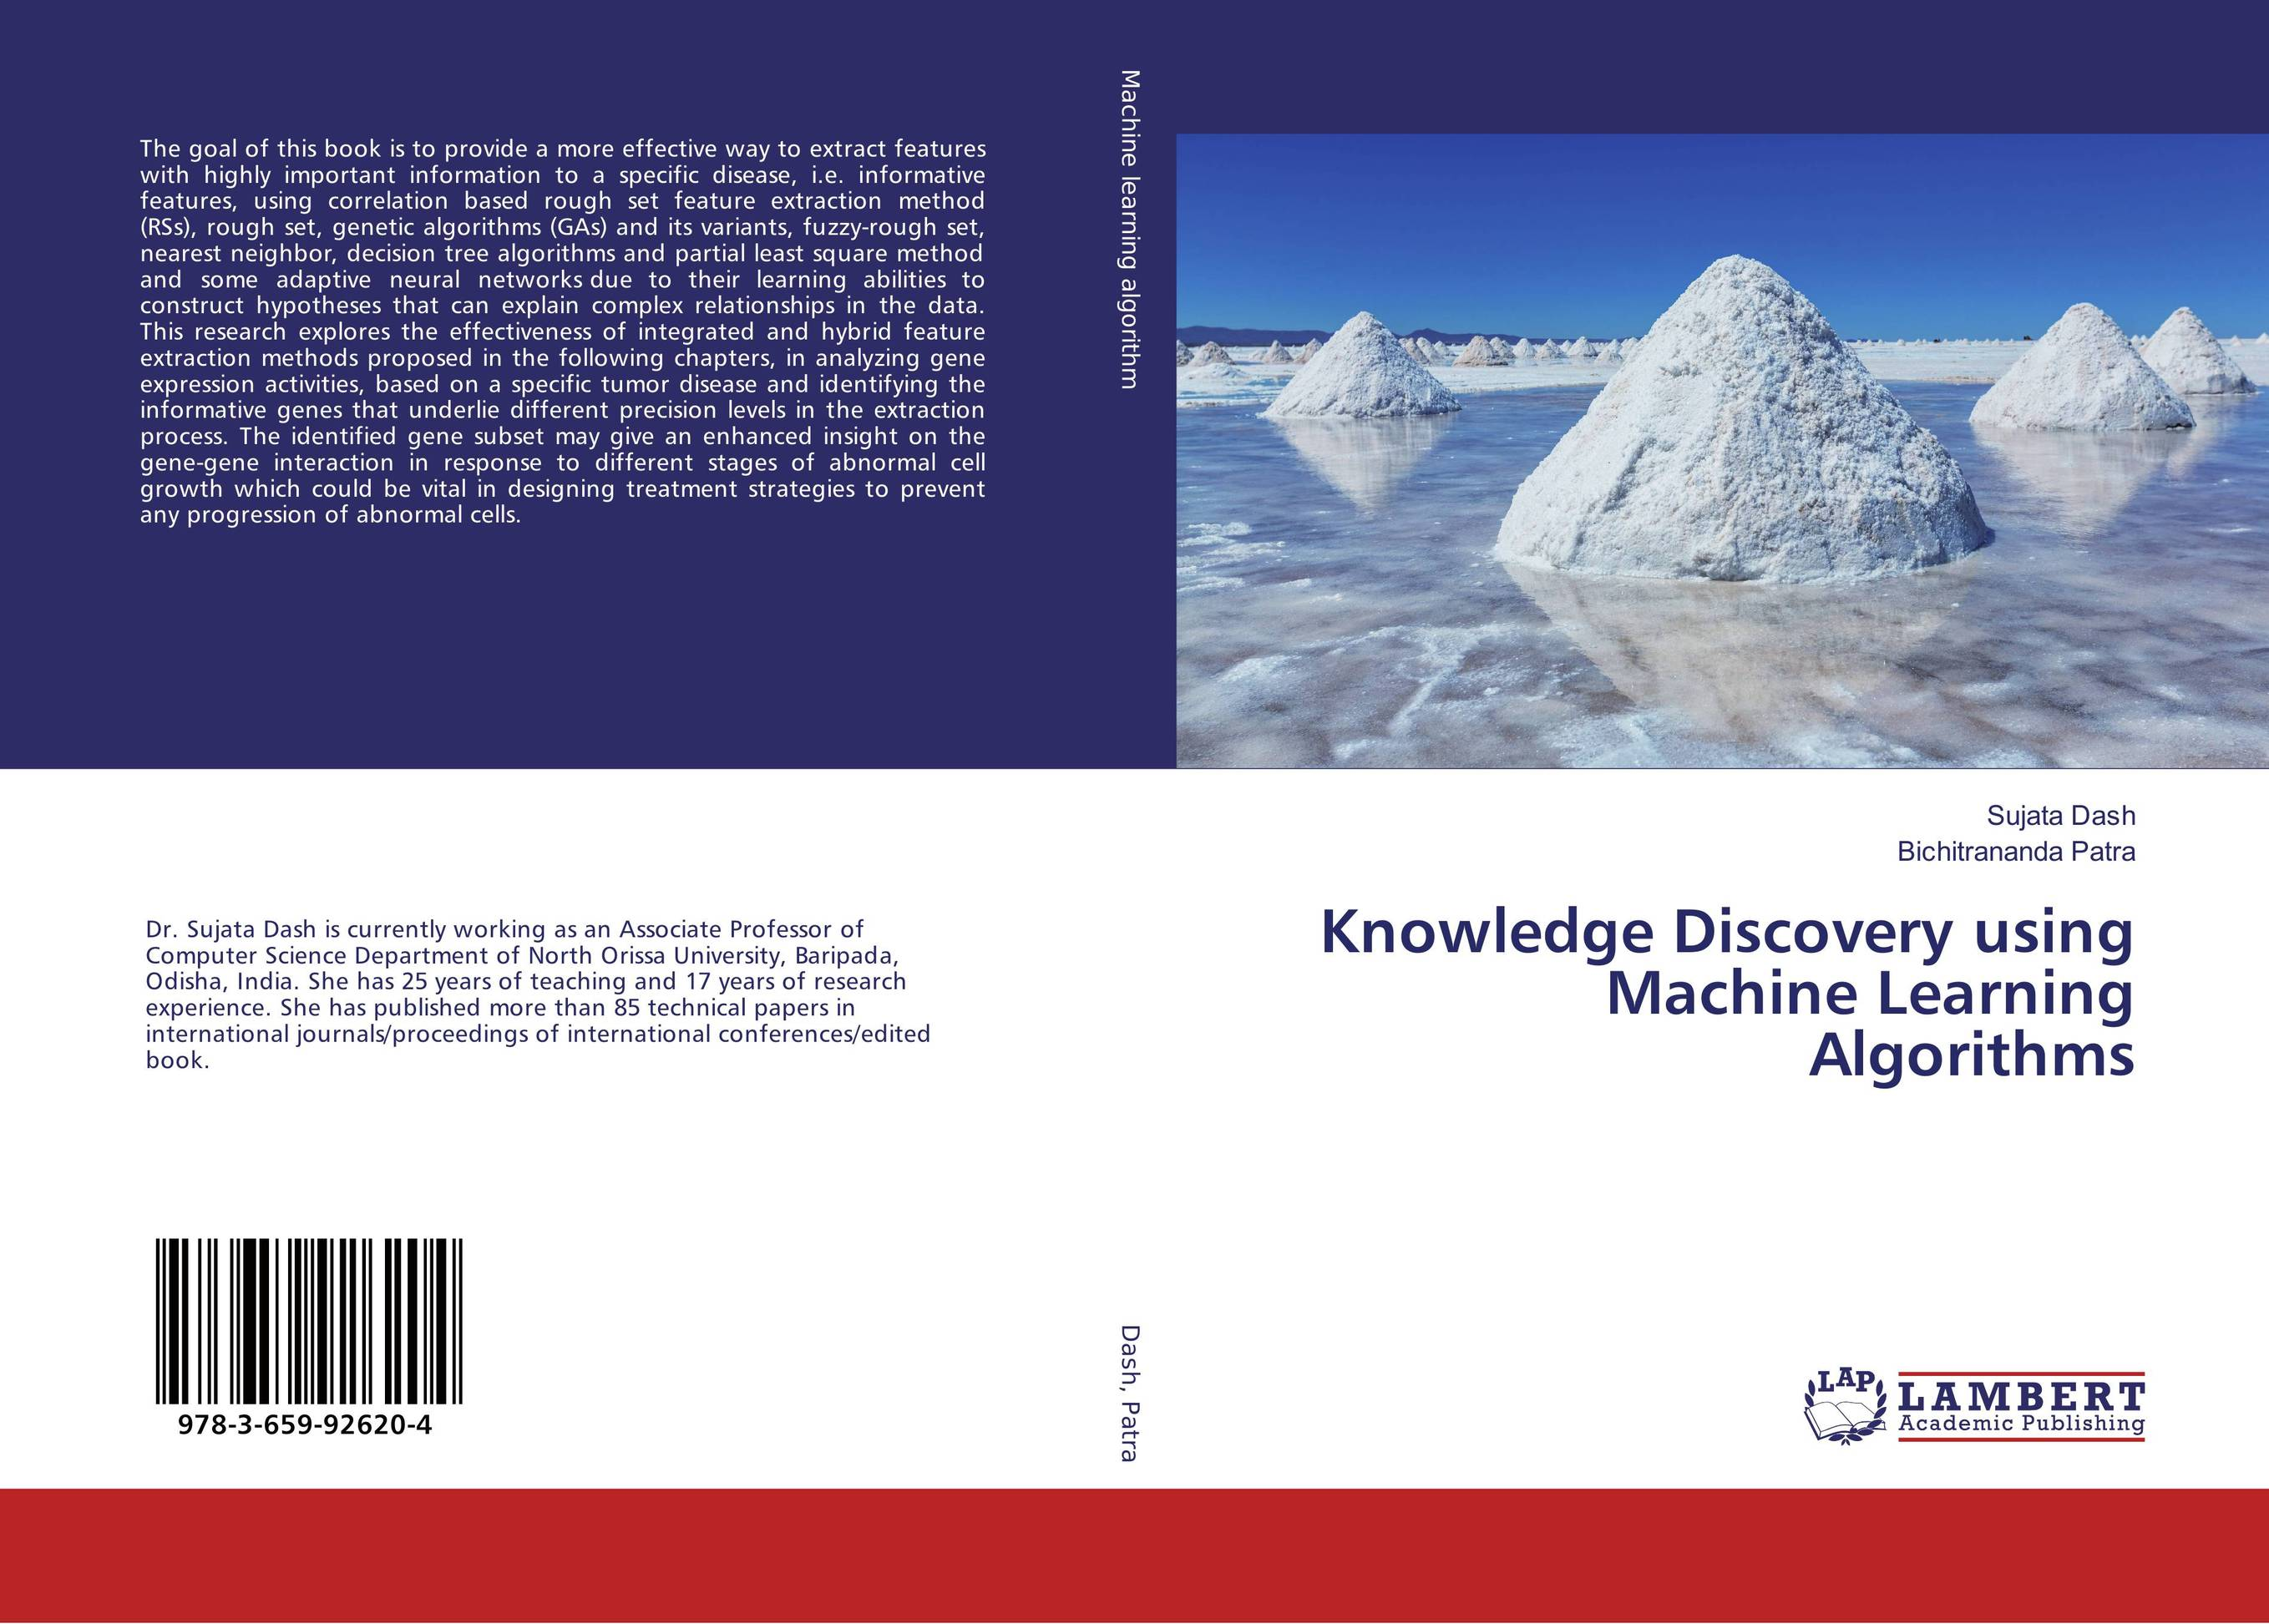 9783659926204 Knowledge Discovery using Machine Learning Algorithms Sujata Das